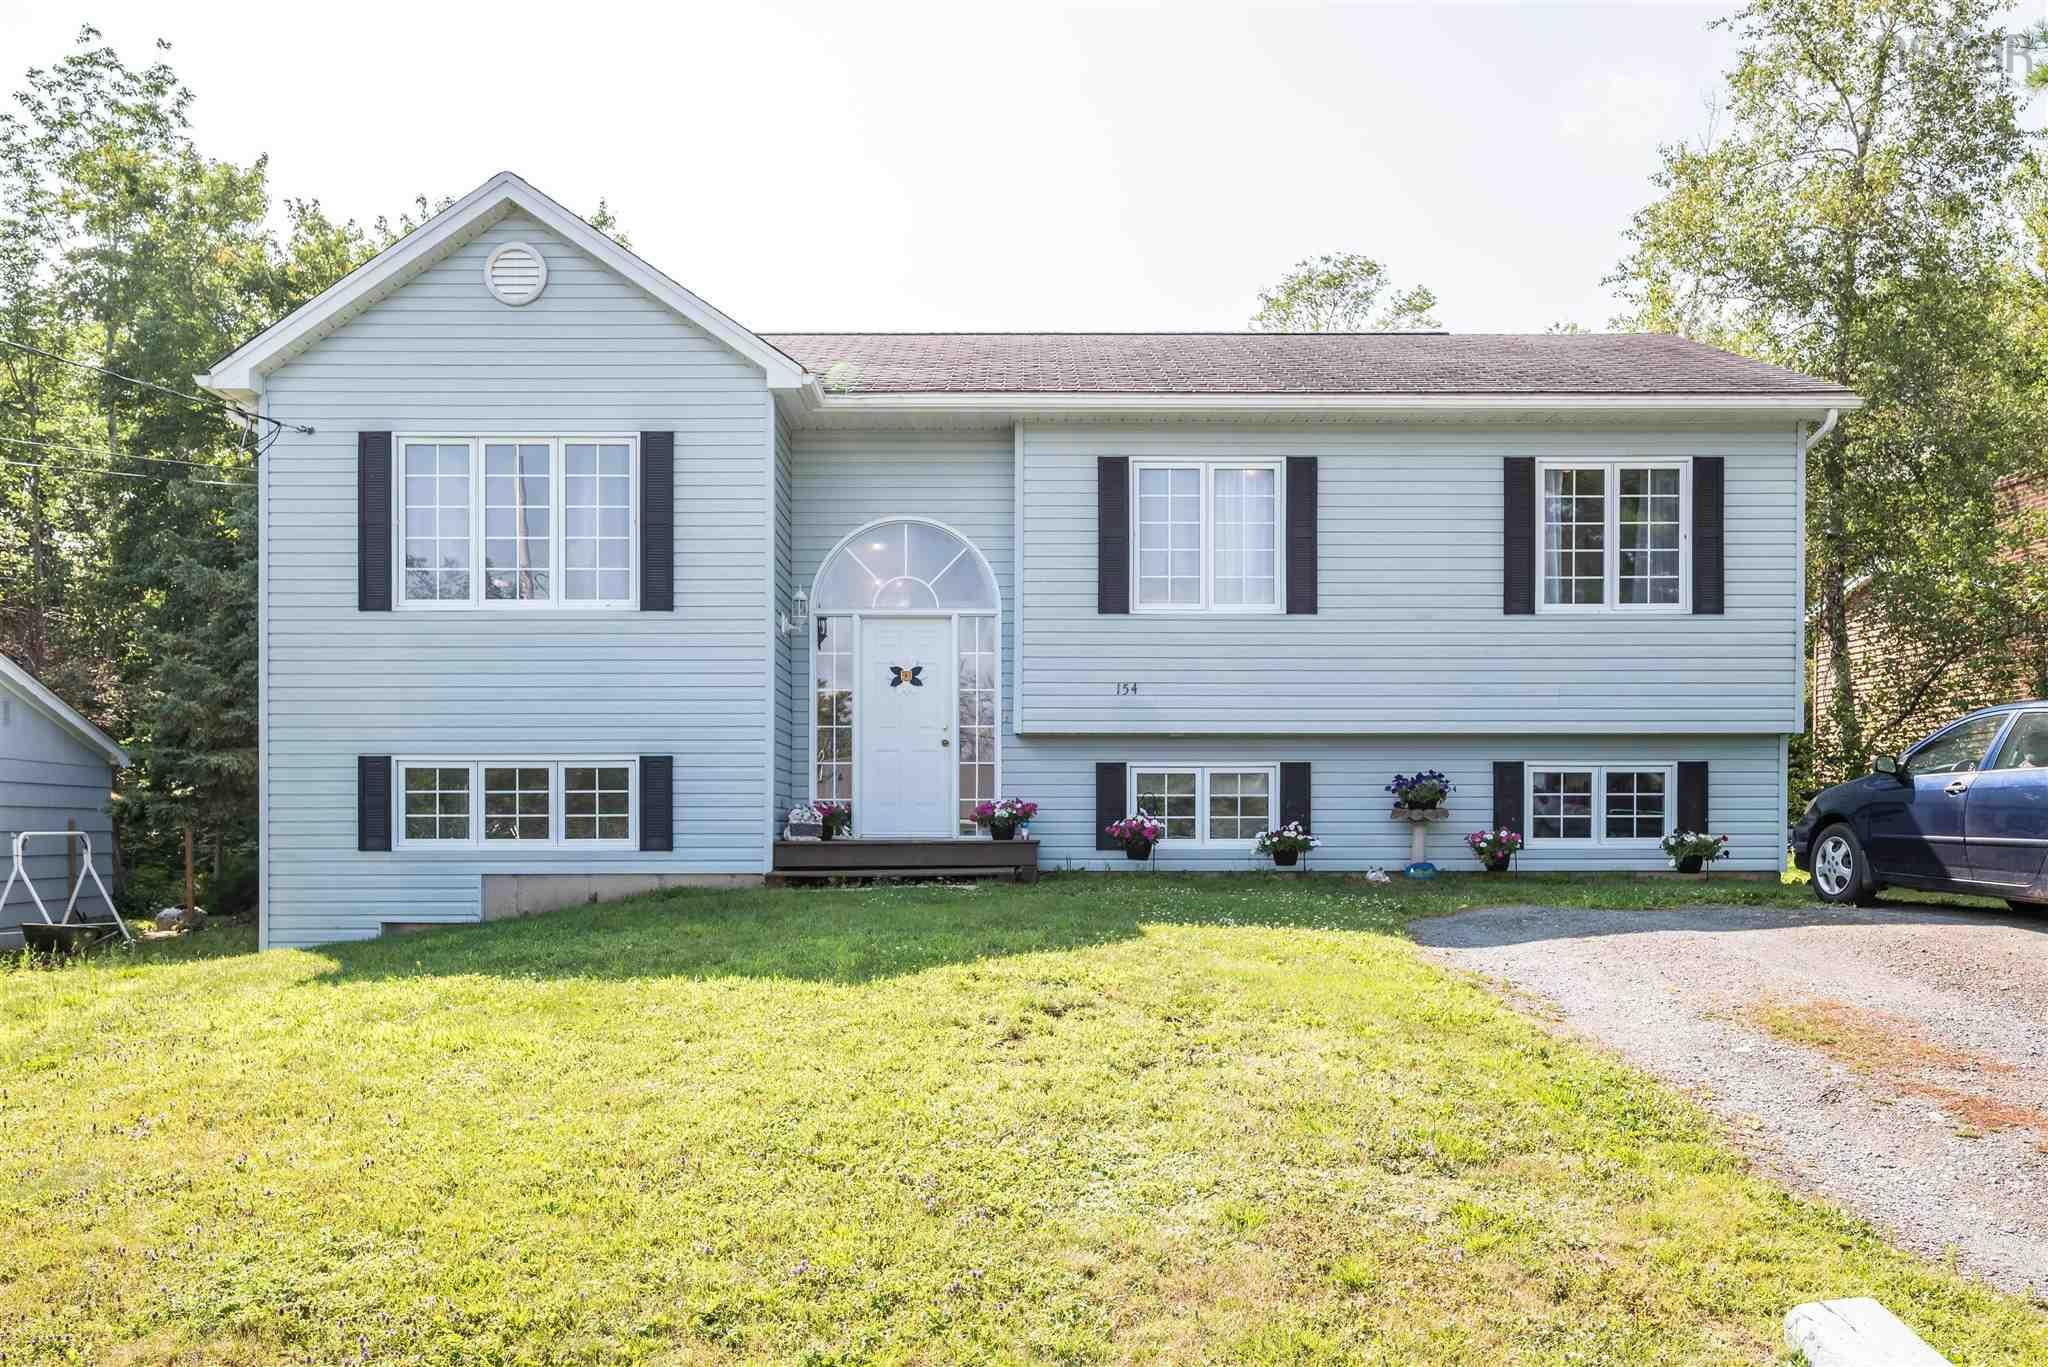 Main Photo: 154 Miller Lake Road in Fall River: 30-Waverley, Fall River, Oakfield Residential for sale (Halifax-Dartmouth)  : MLS®# 202123092